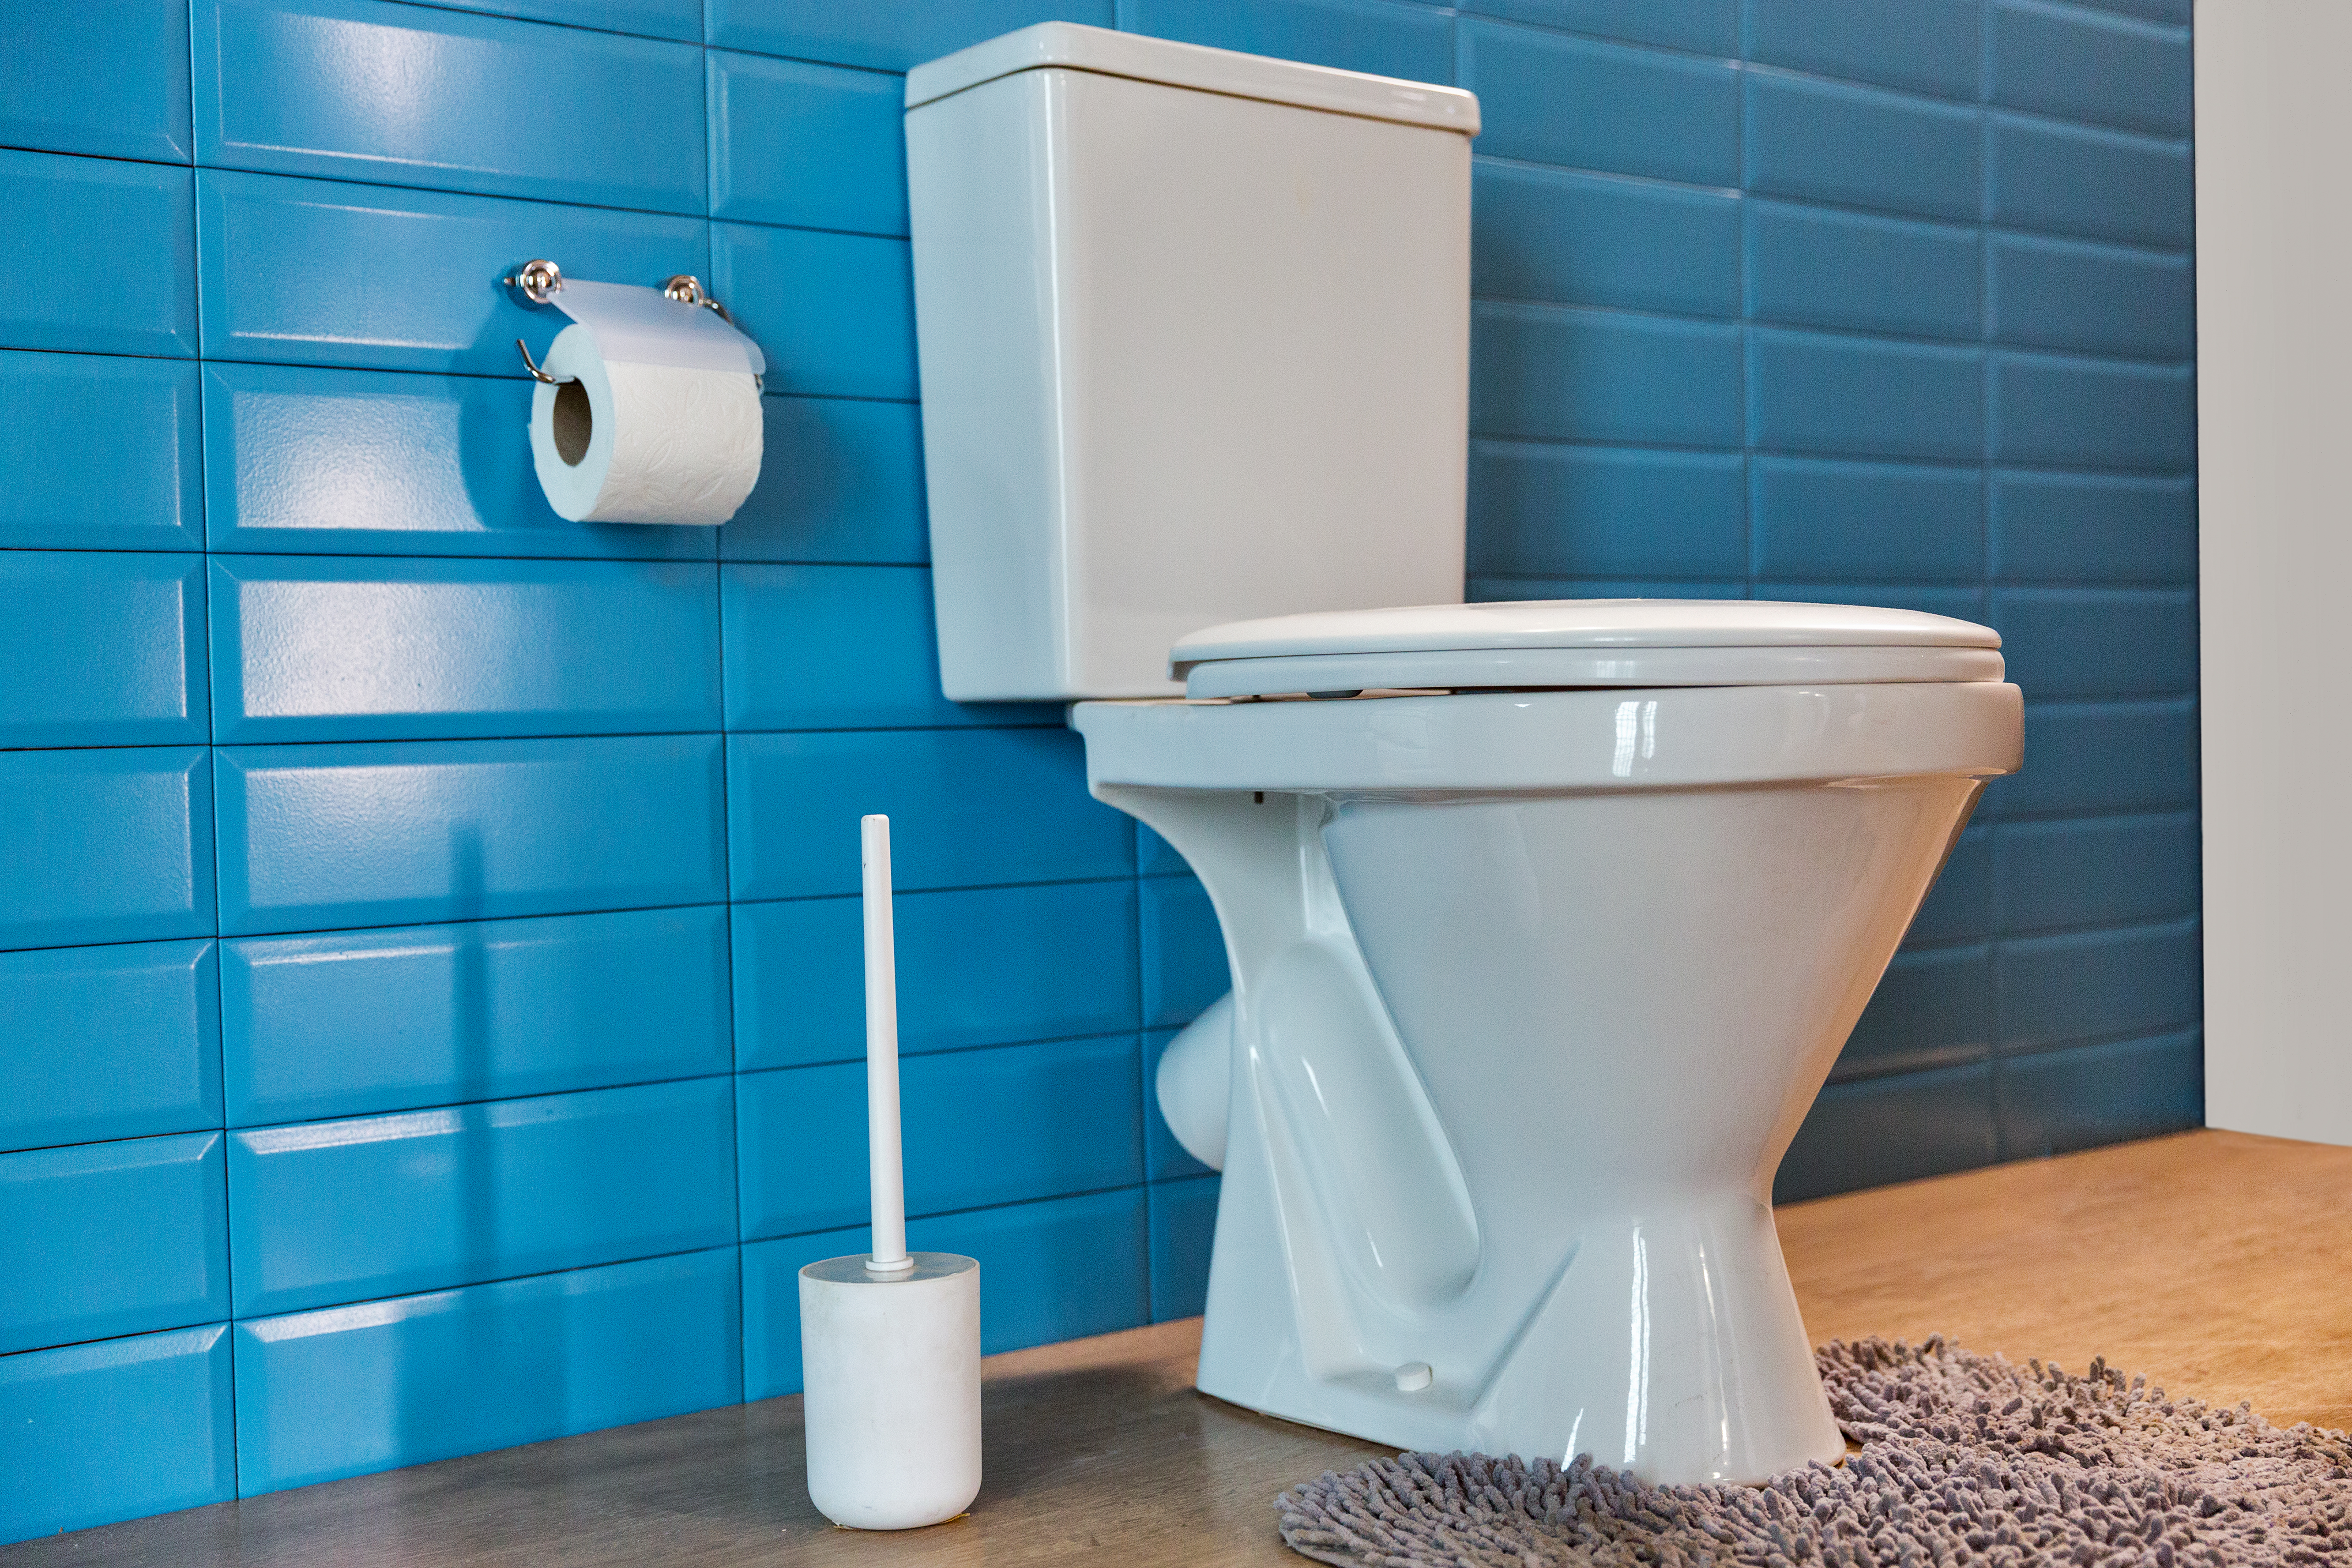 How to Fix a Toilet Making a Foghorn Sound | Home Guides